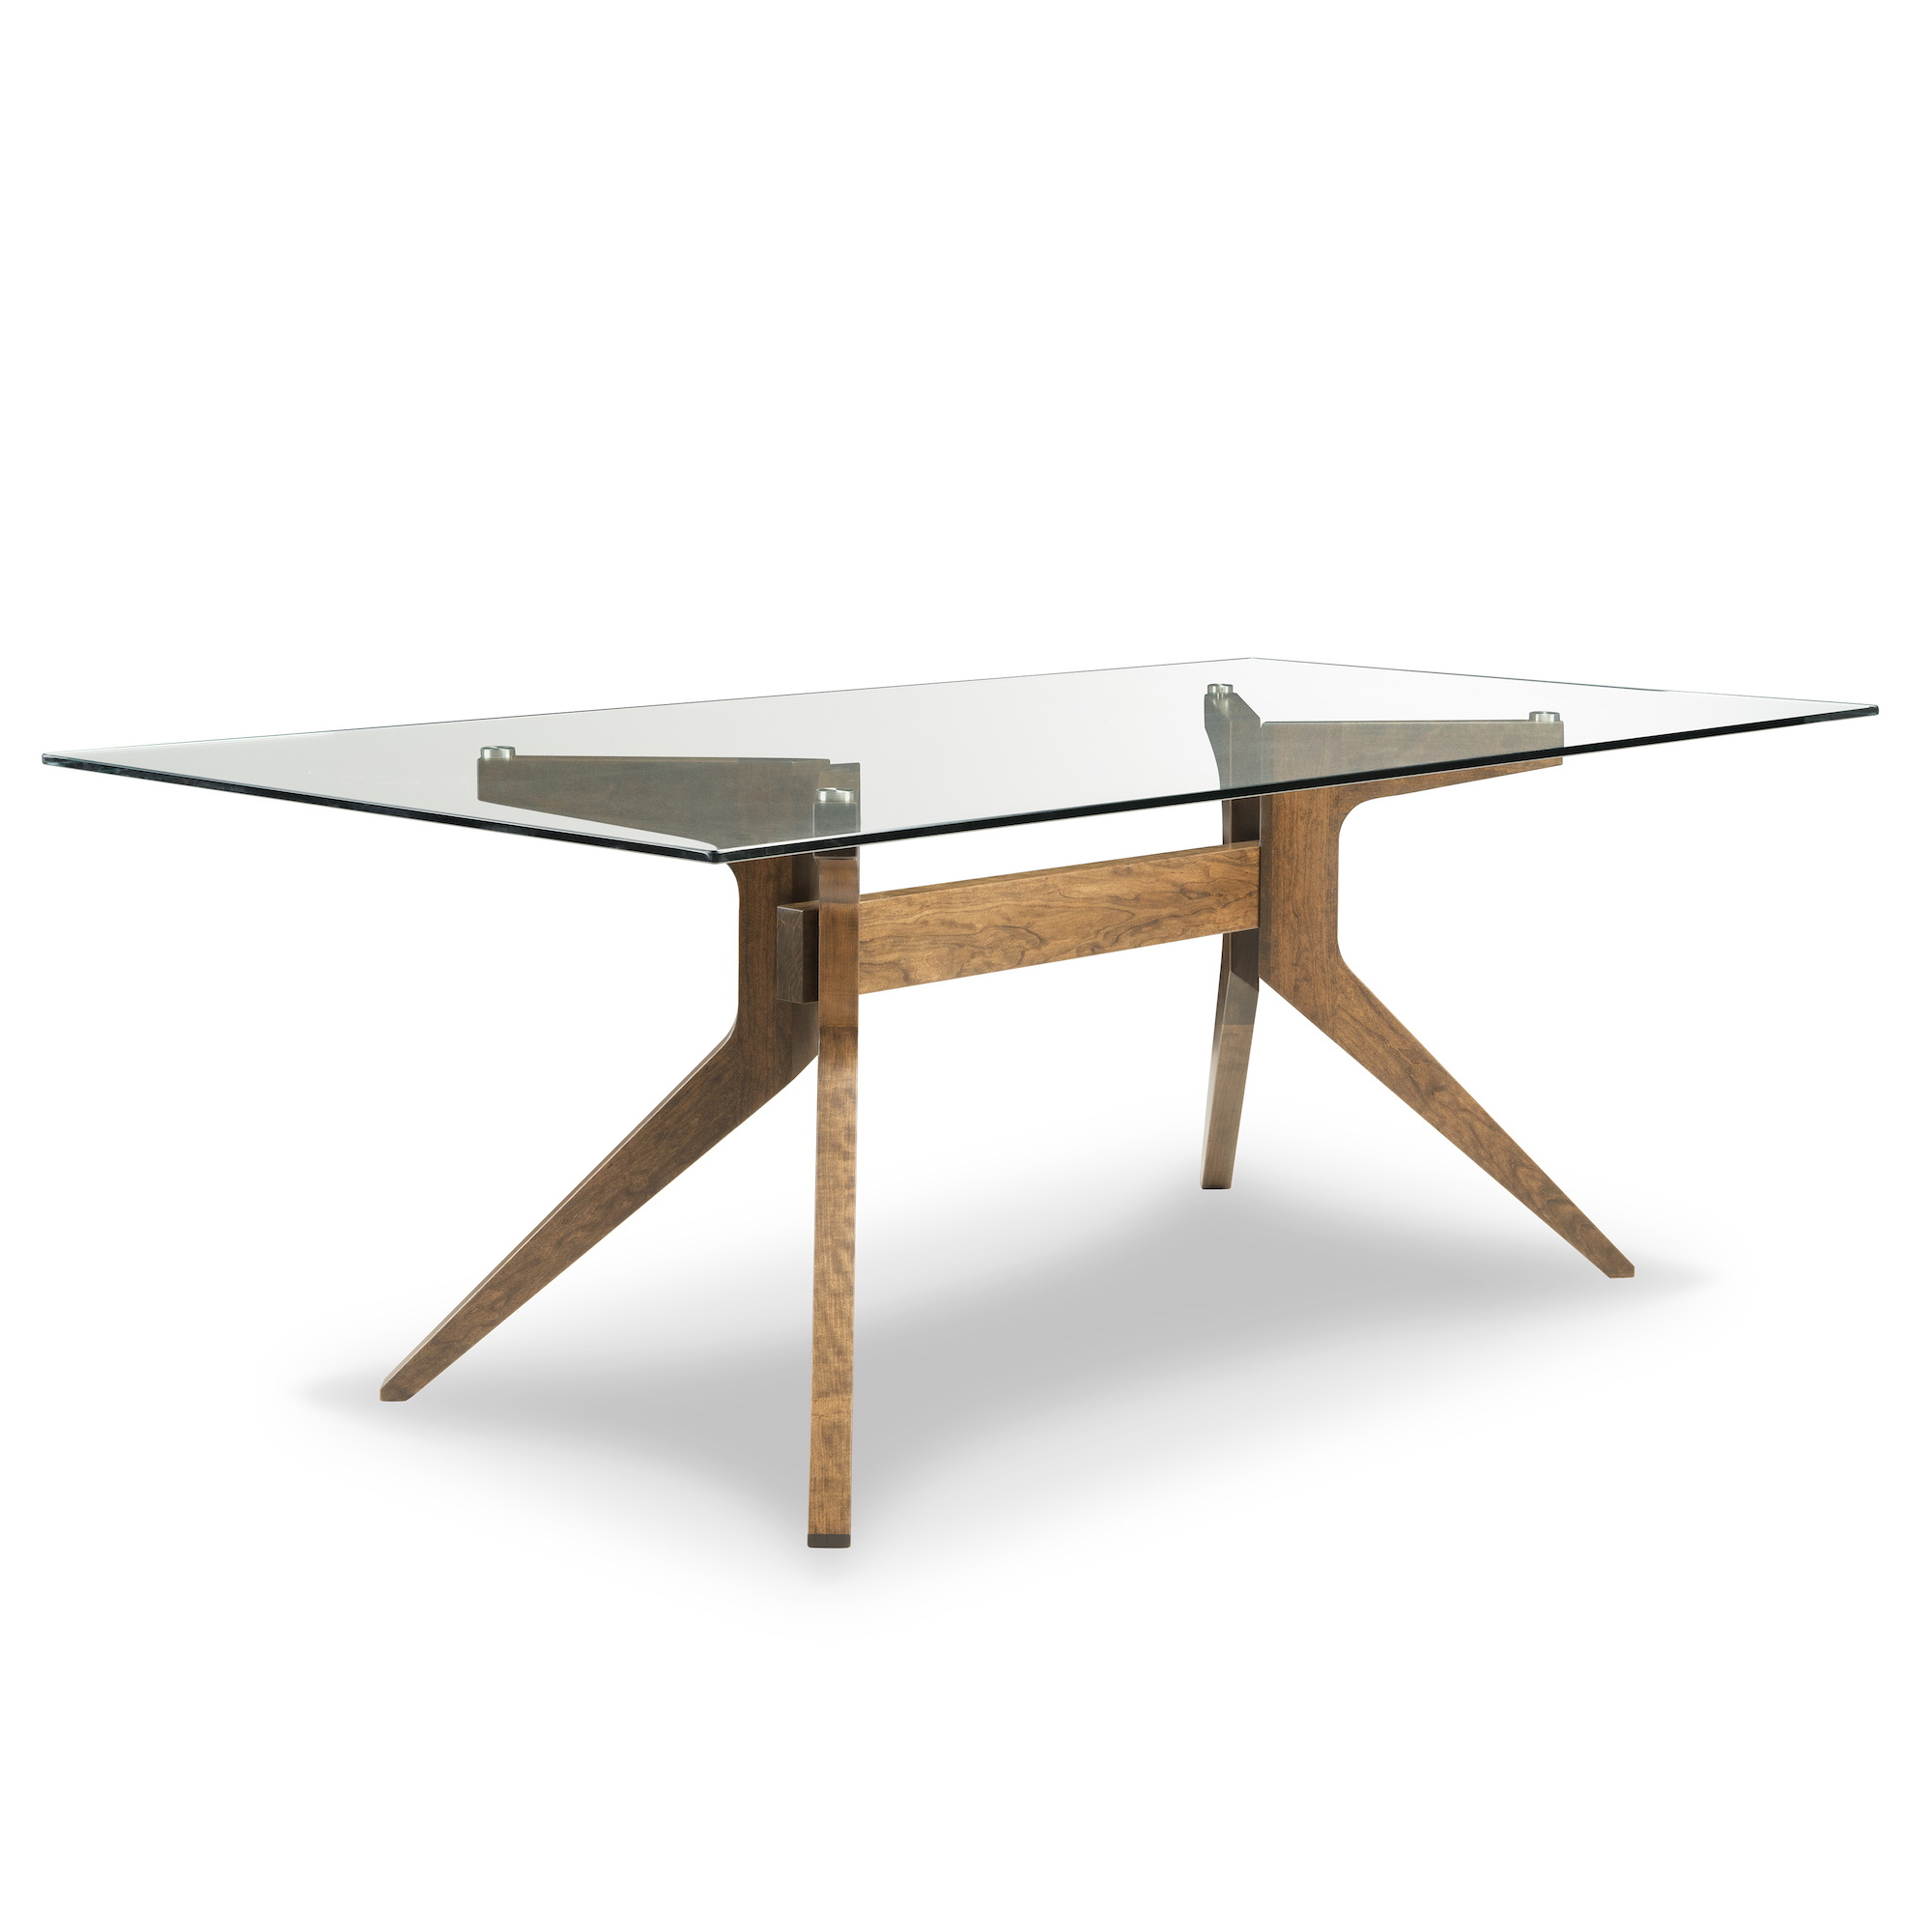 Malmo_Table_Angled-2-1-1.jpg